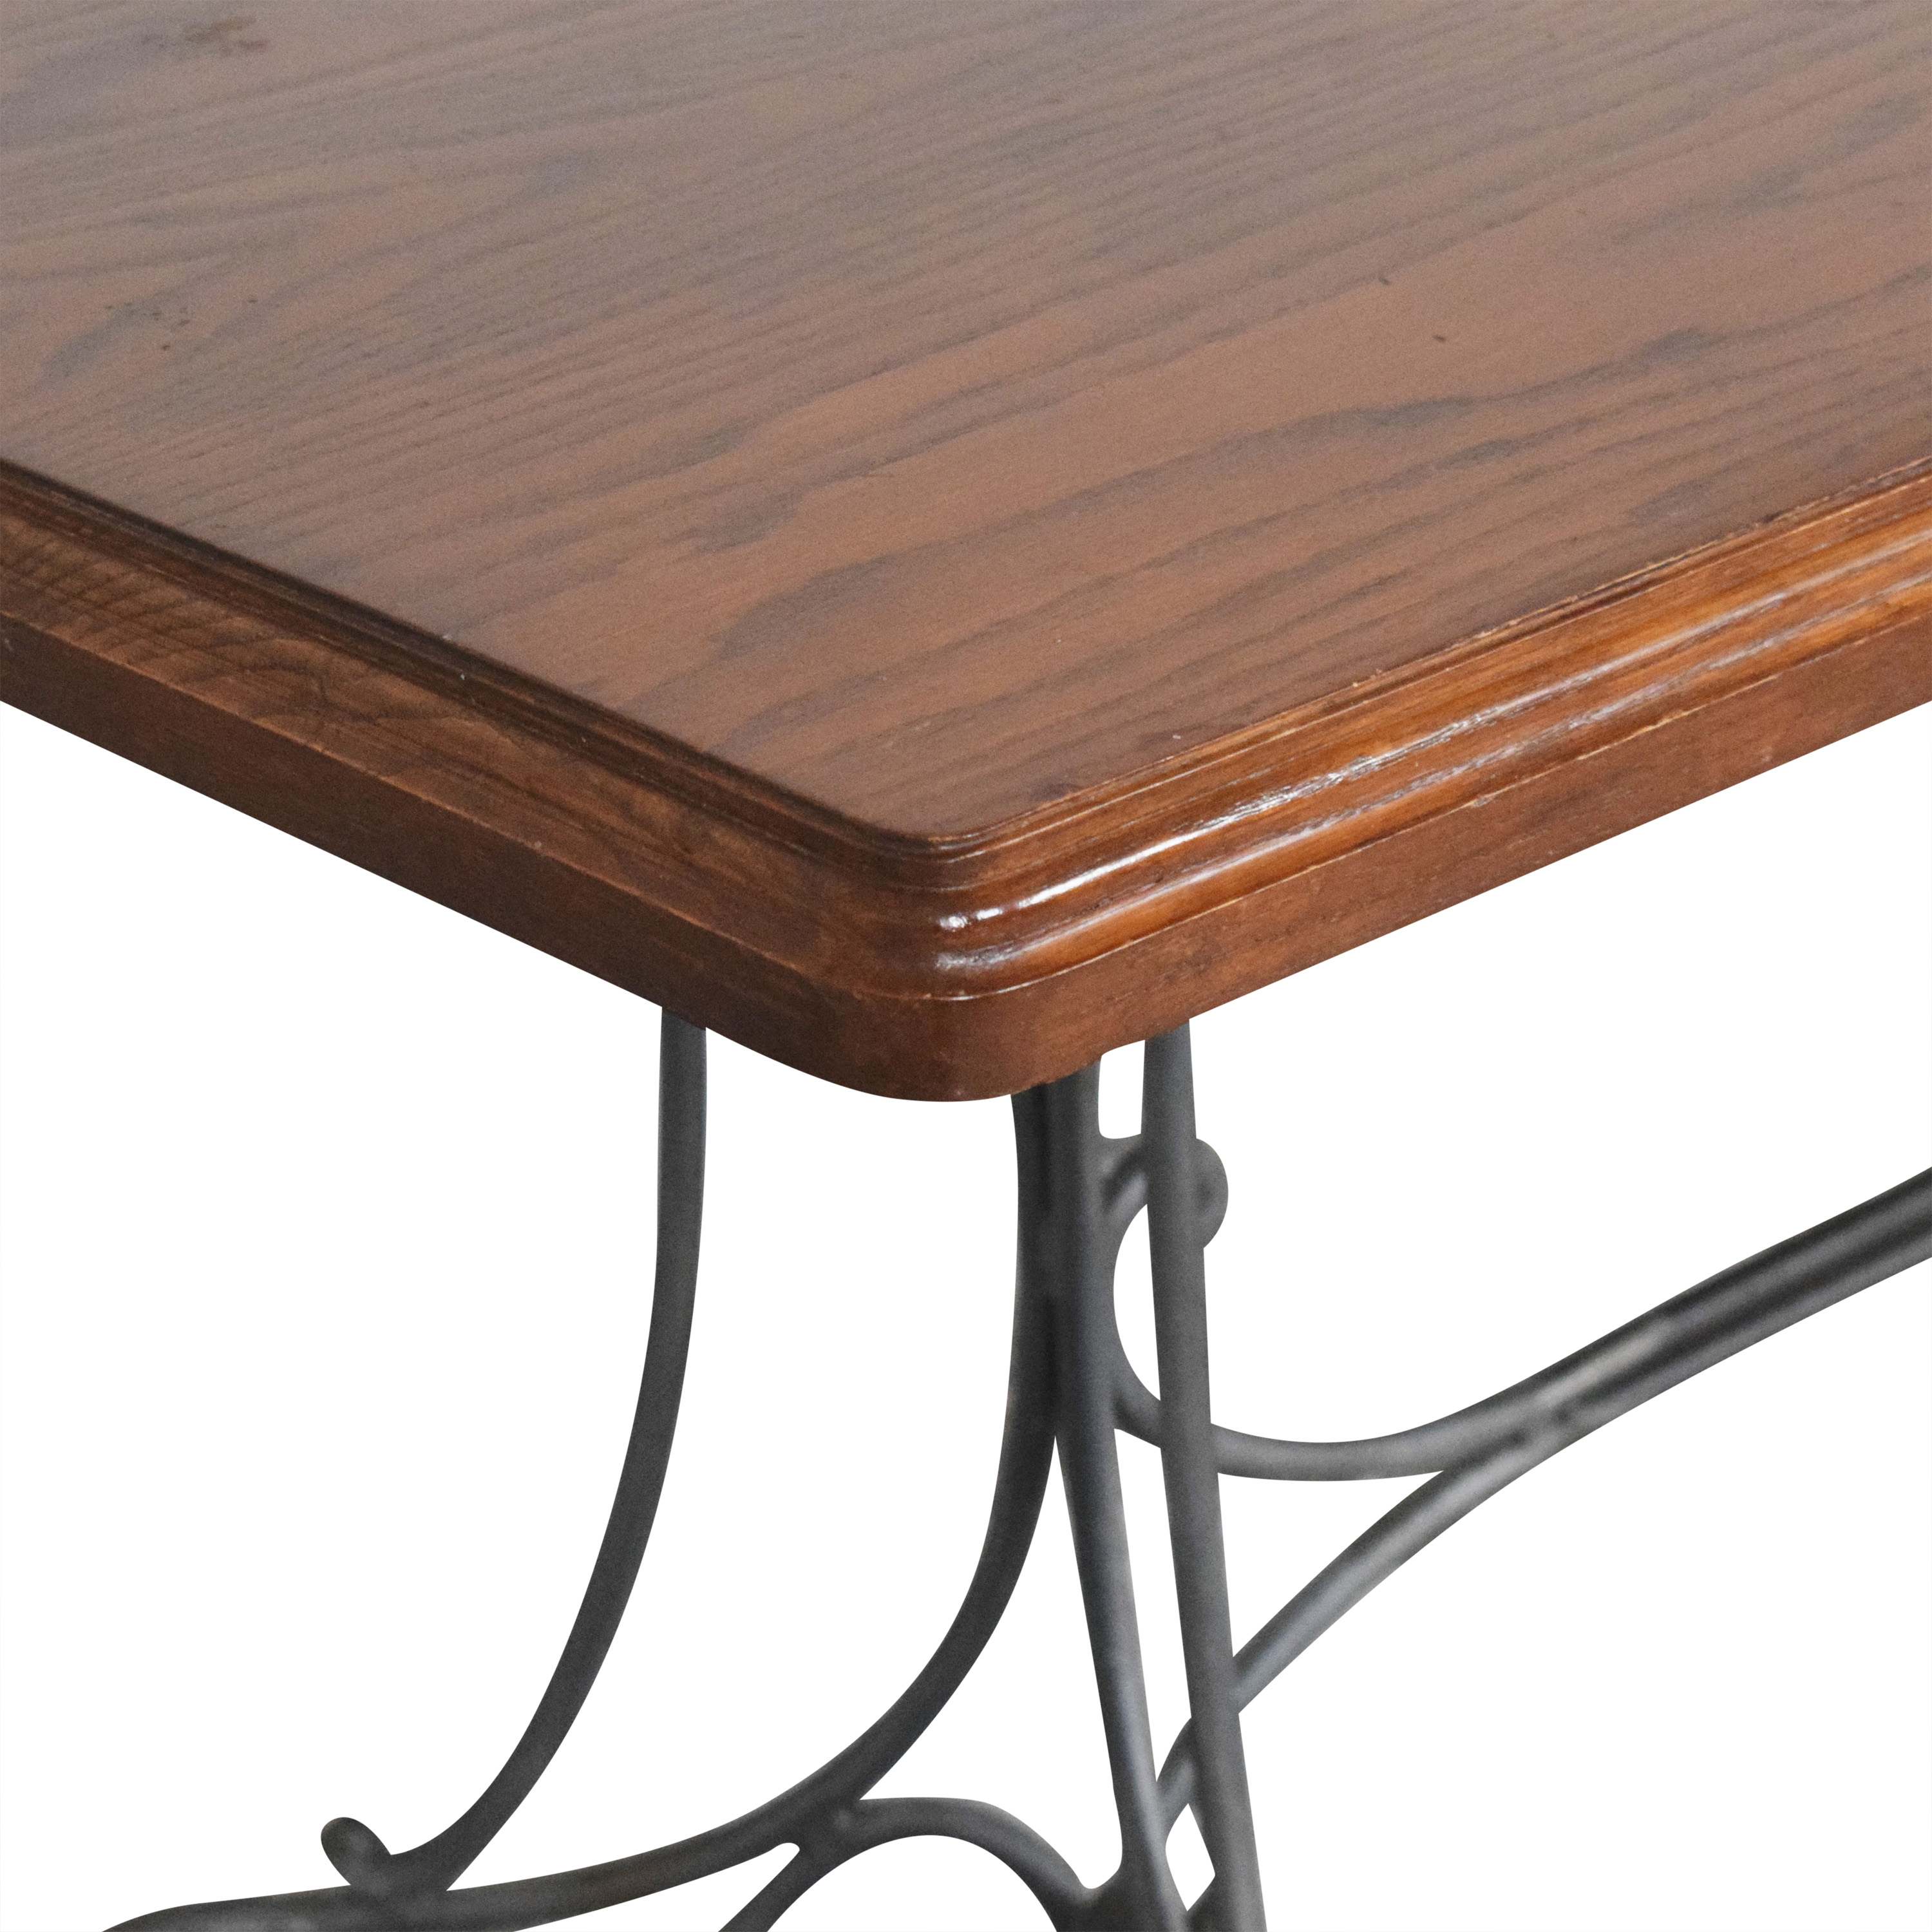 Custom Dining Table with Antique Openwork Base ma